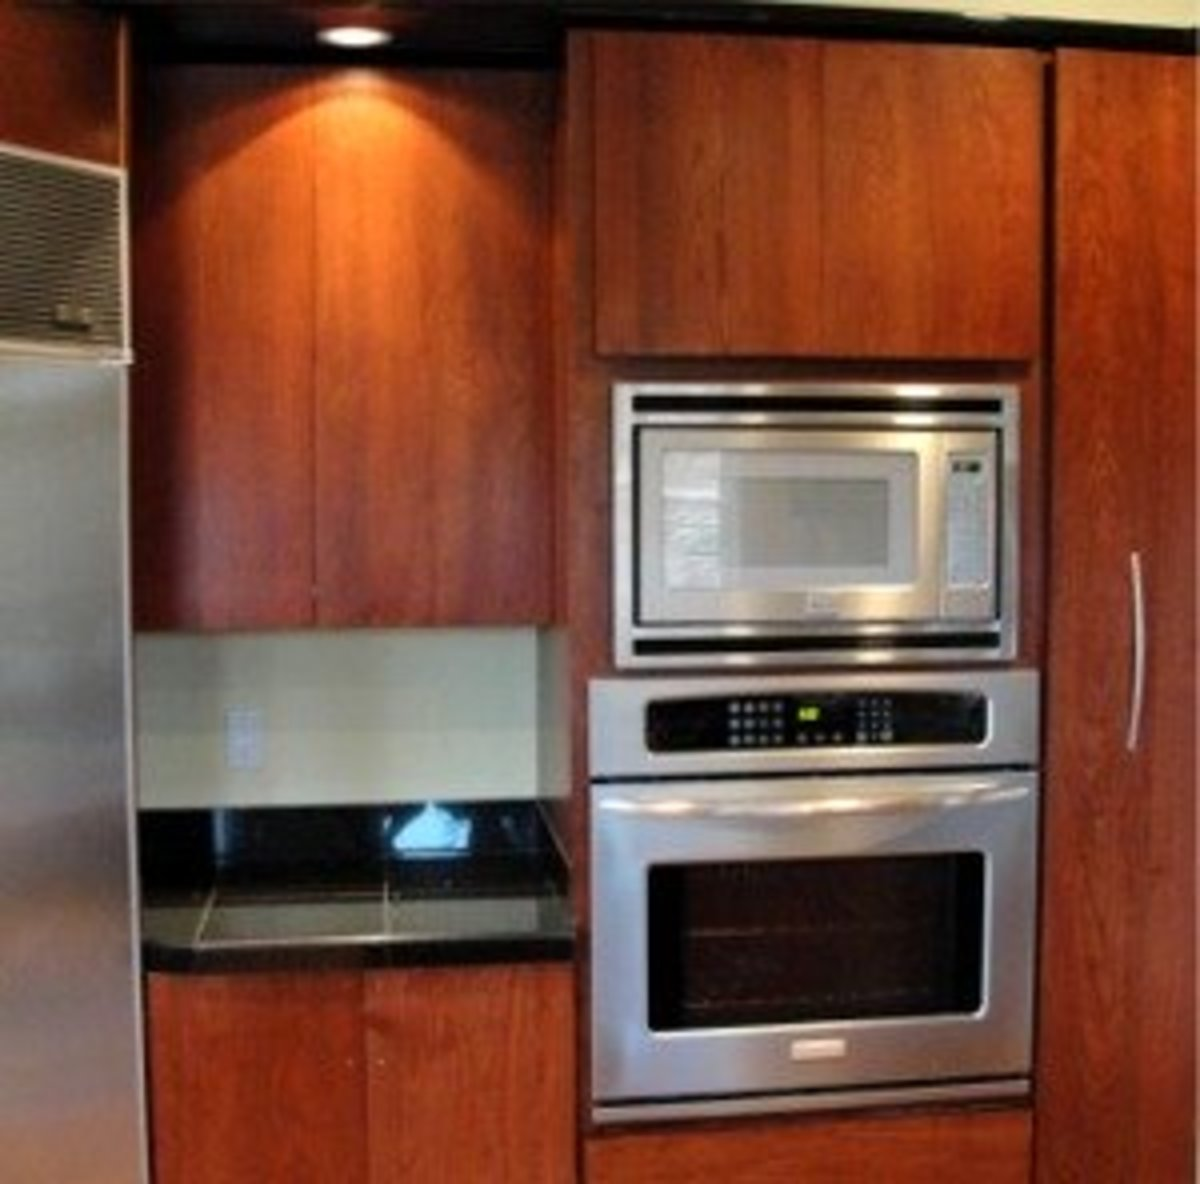 microwave oven on an oven wall with cabinets